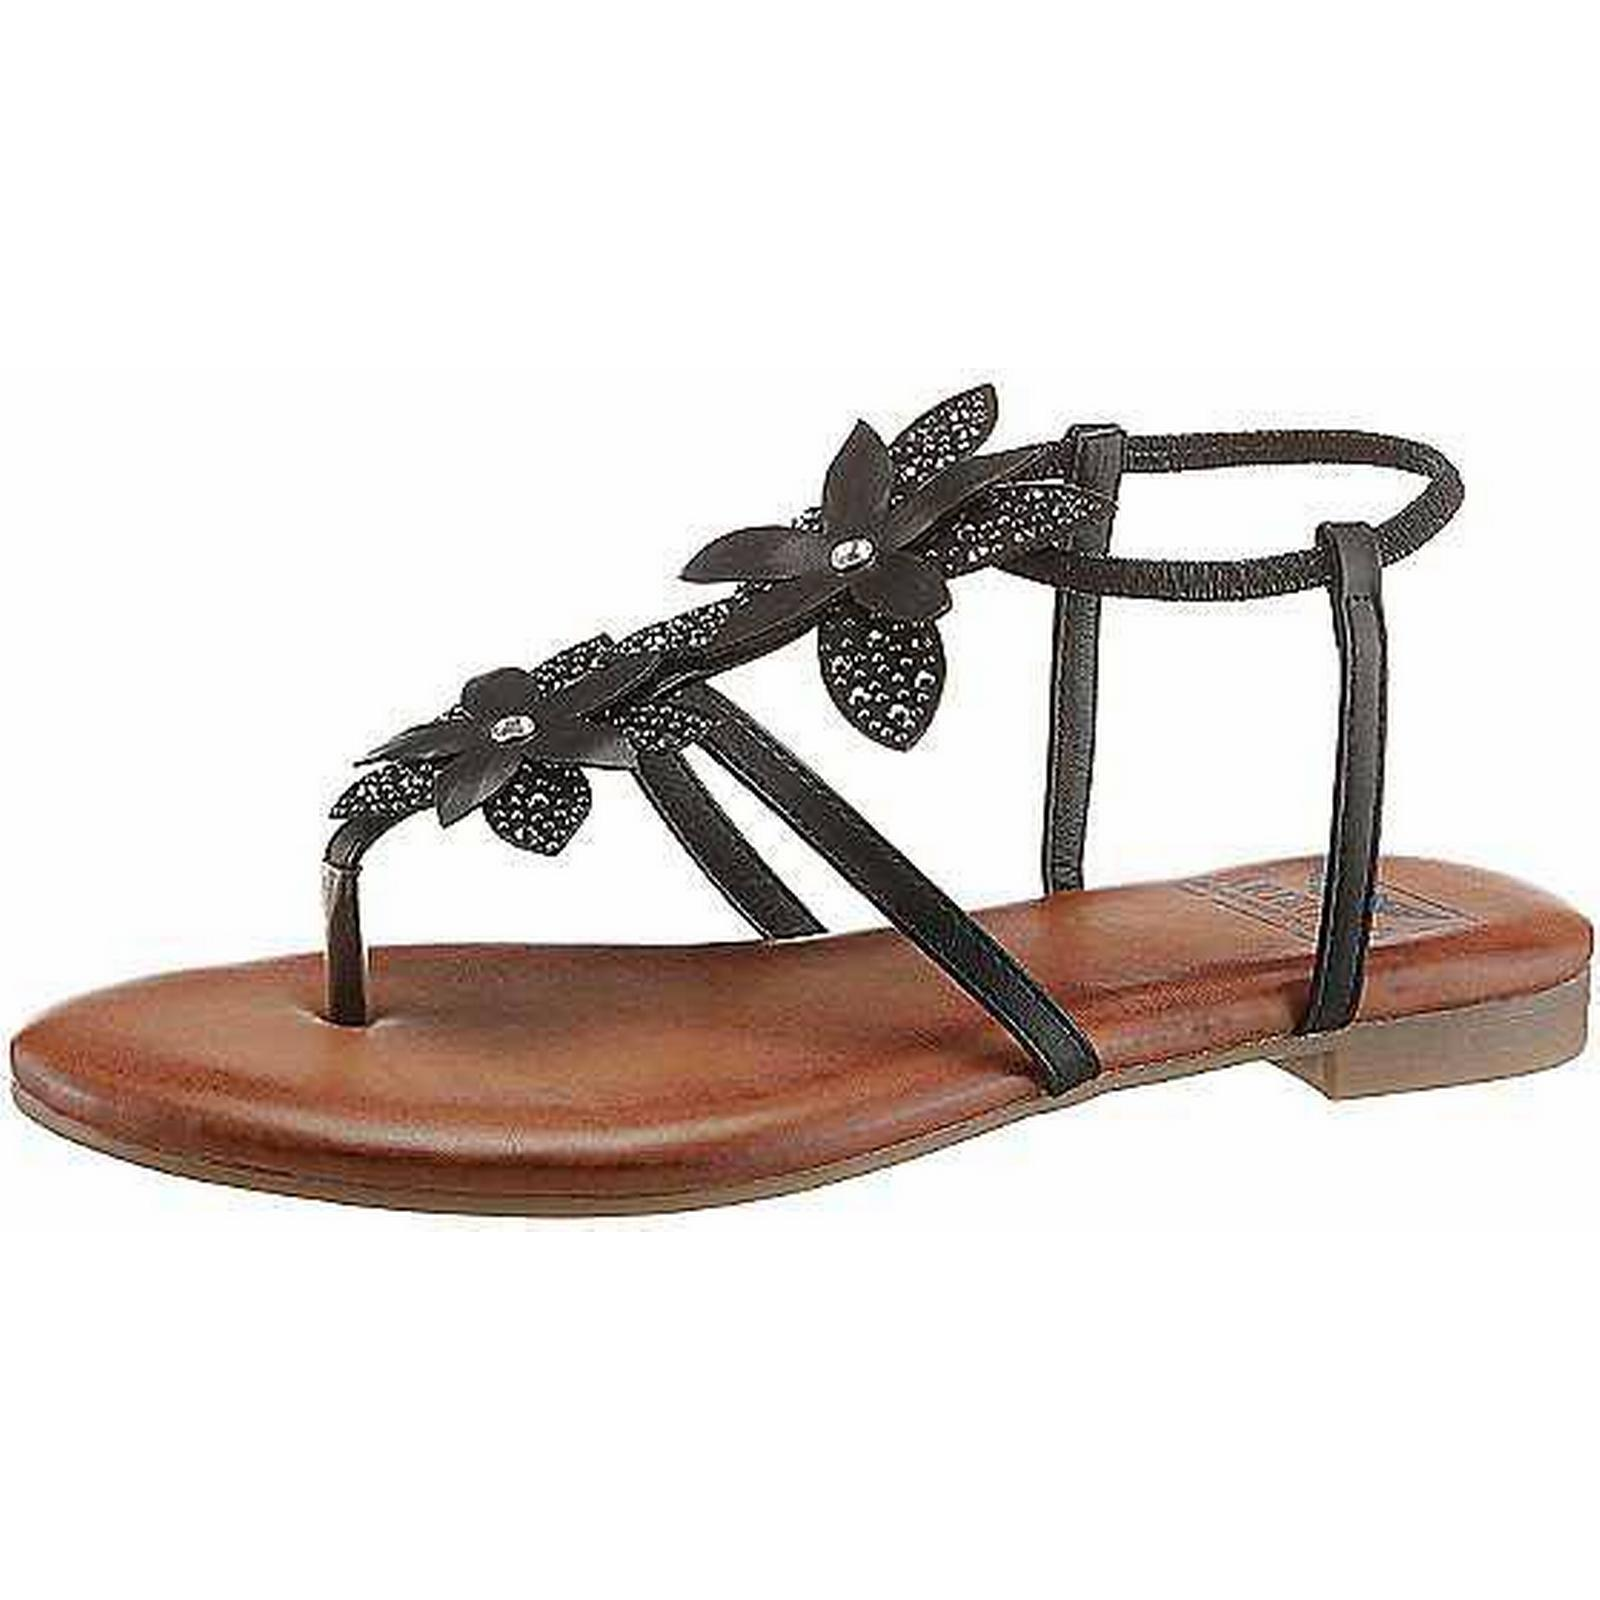 Arizona Rhinestone Floral Strappy Sandals shoes by Arizona:Gentleman/Lady:hot tide shoes Sandals e474f6